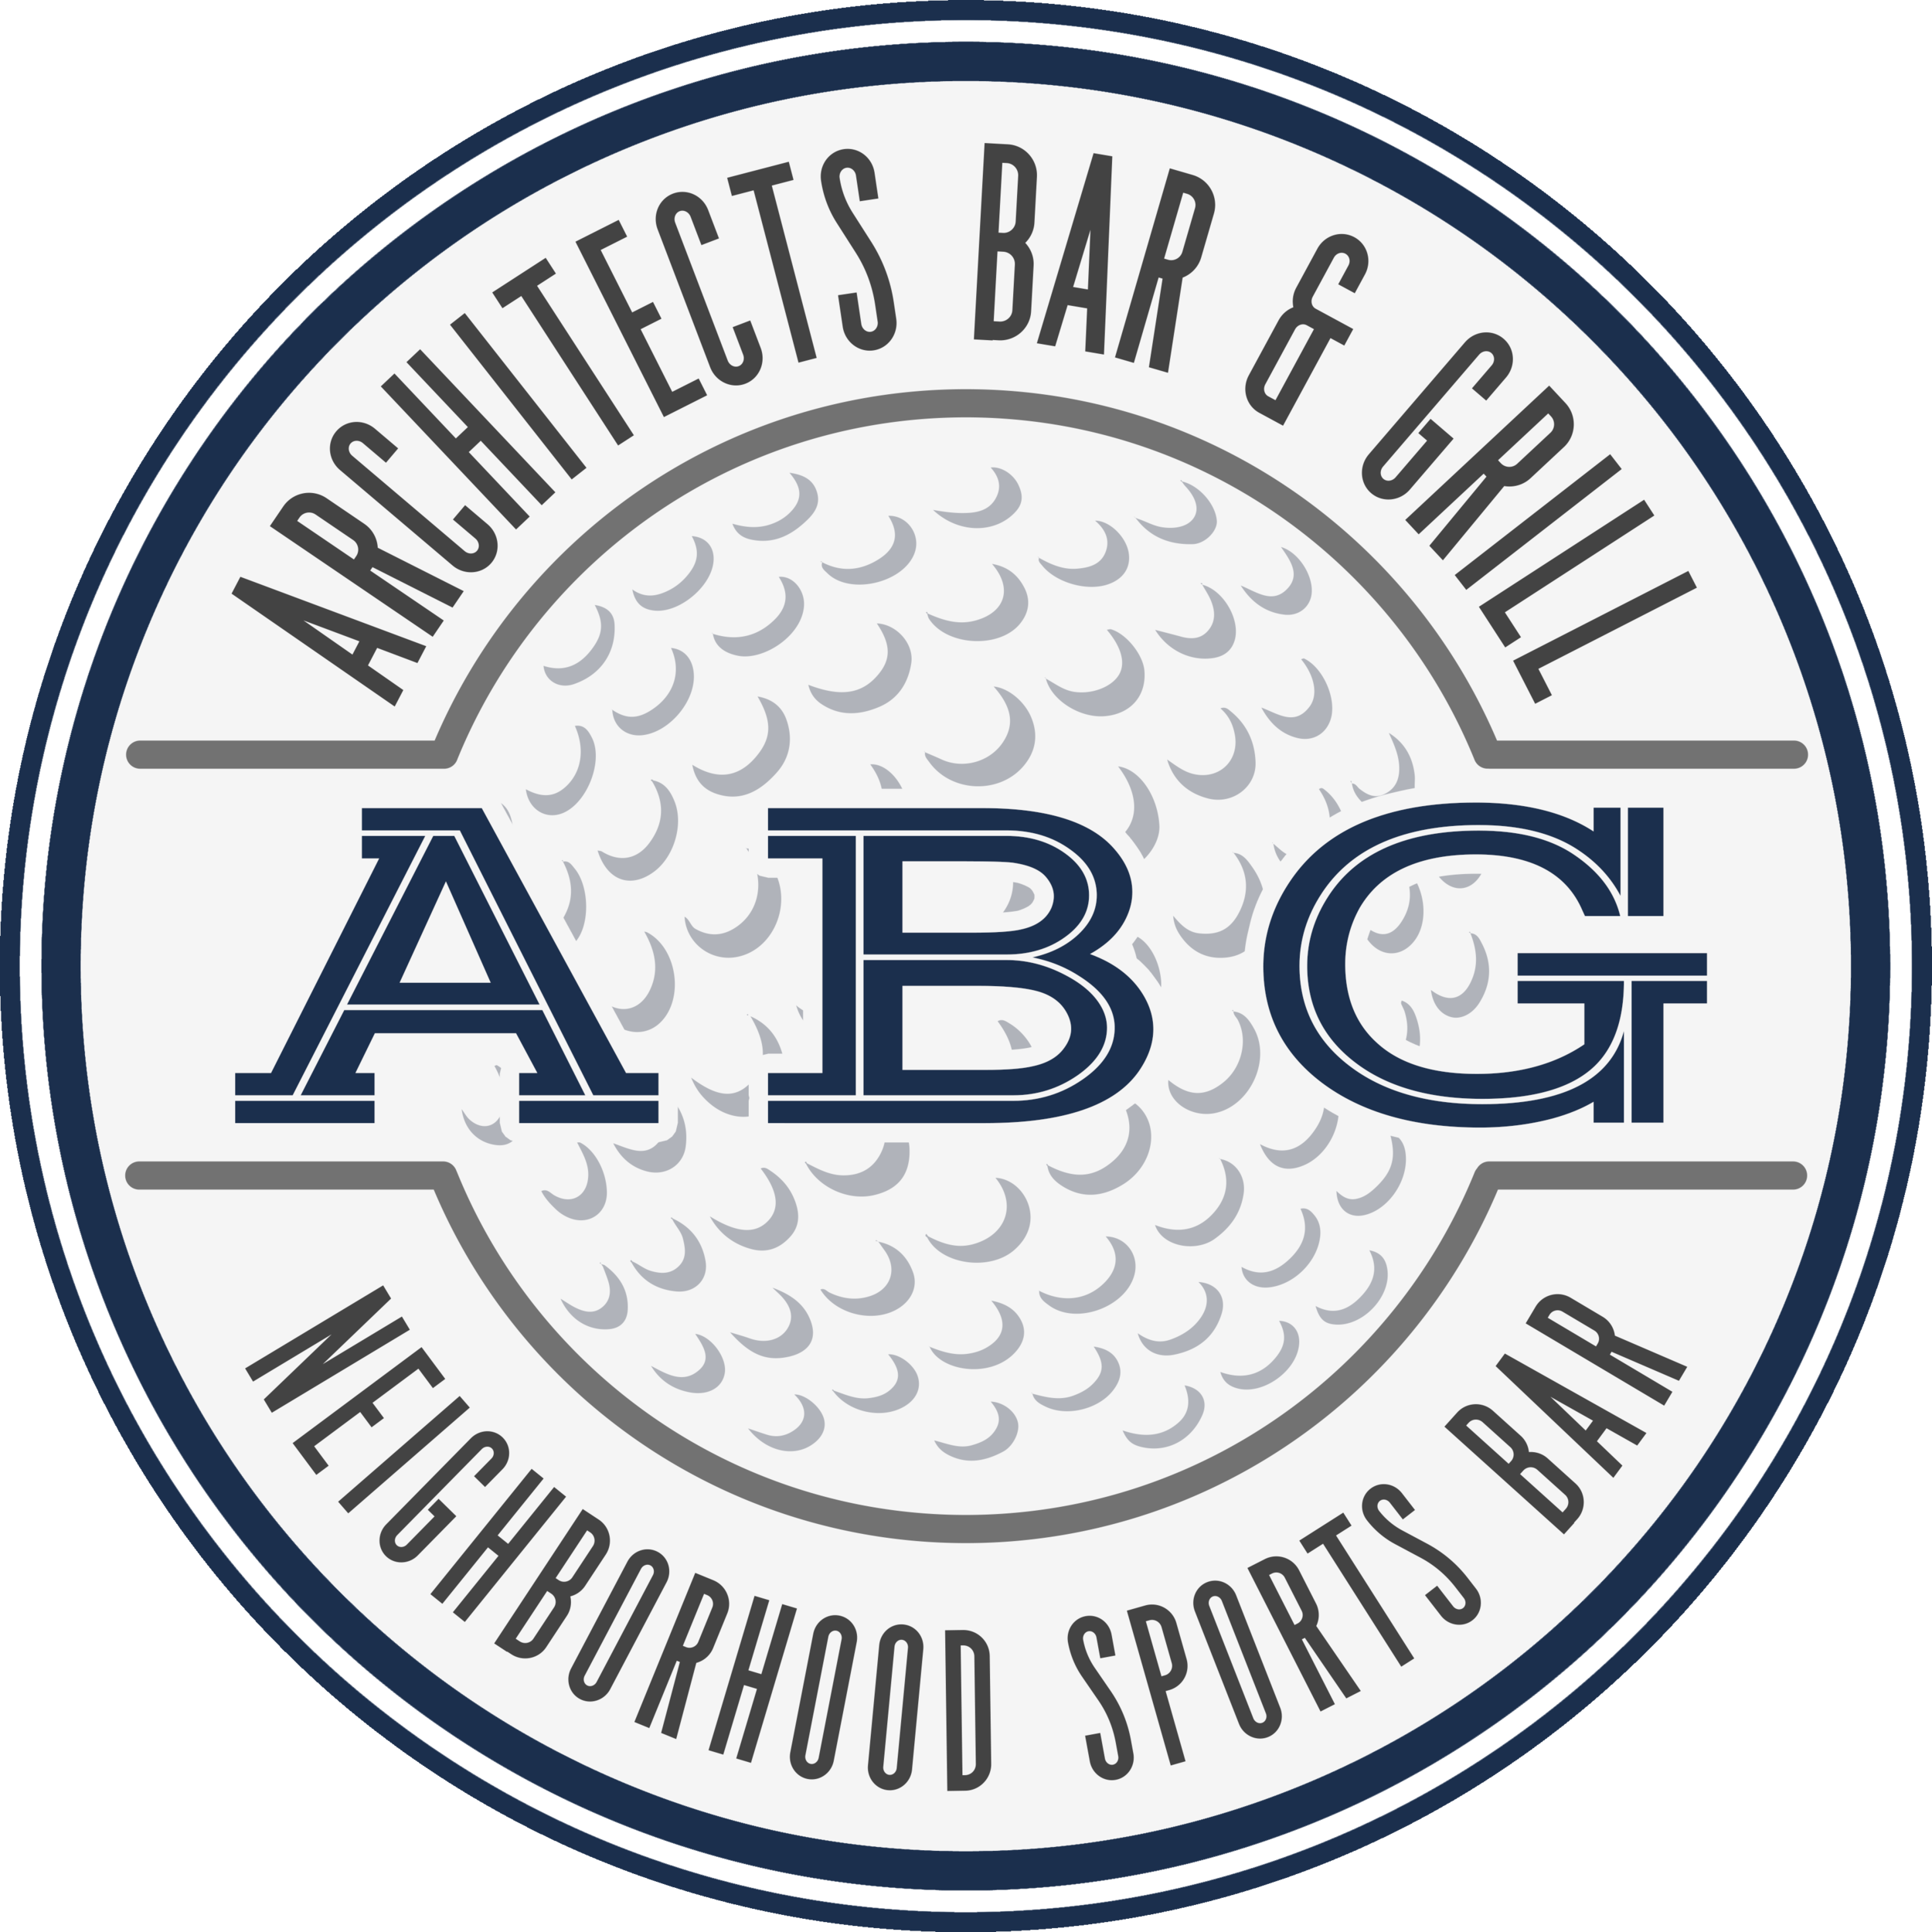 ArchitectsBarGrill6HD final (blue scheme).png